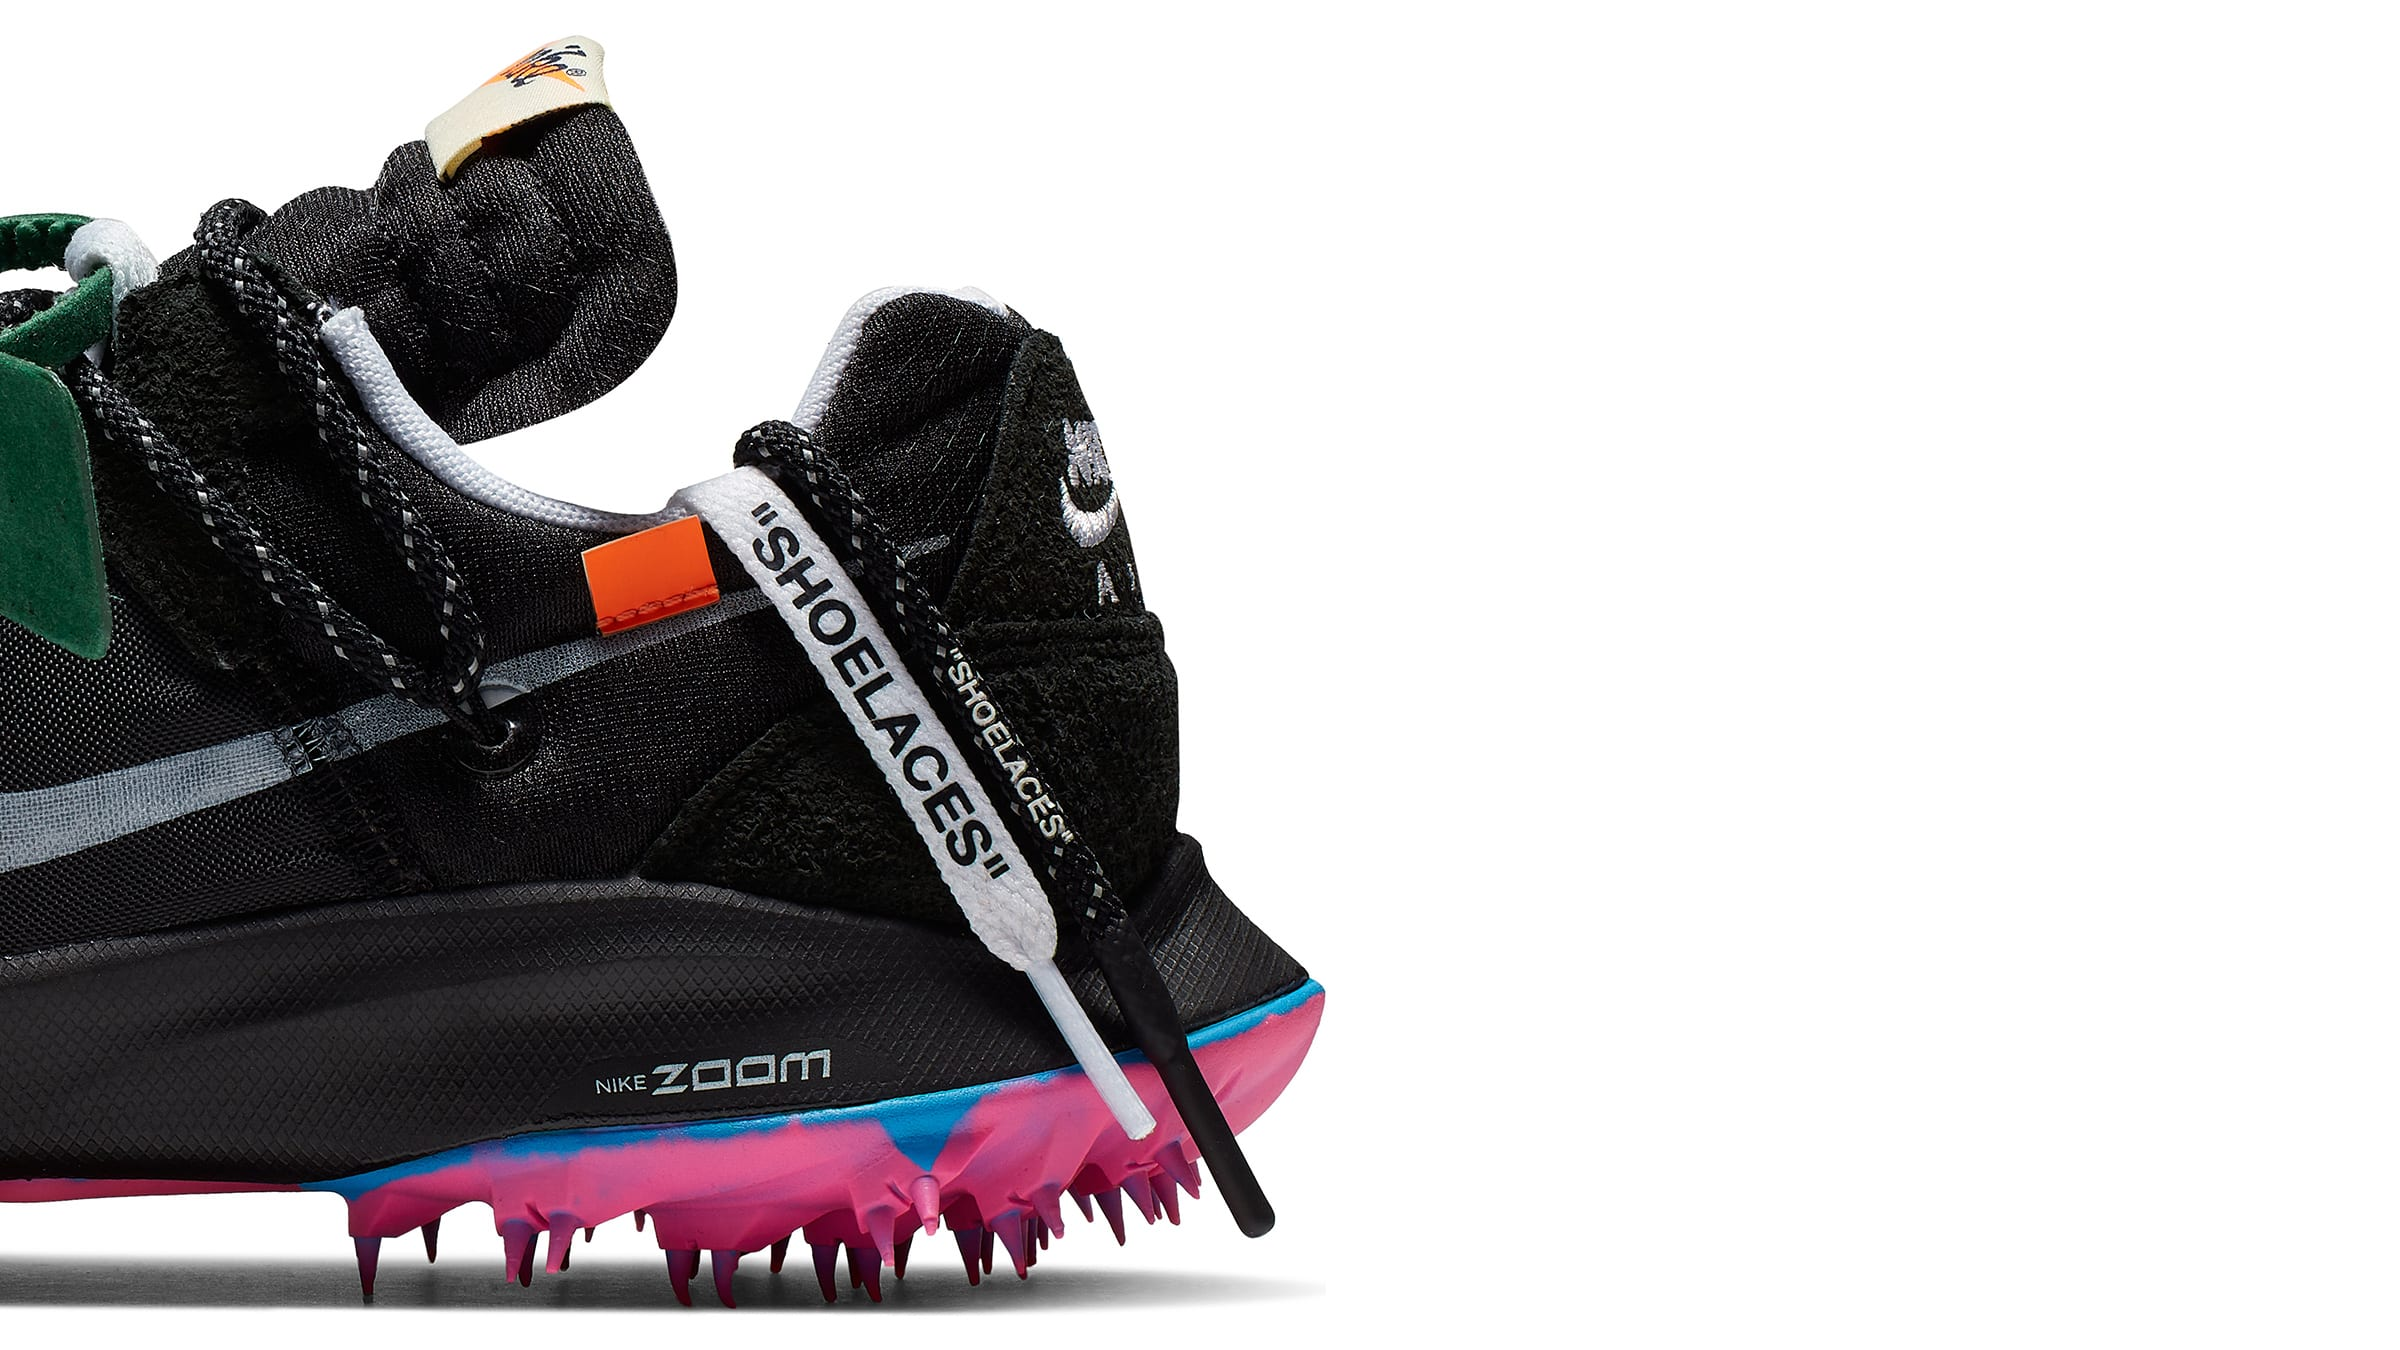 886af2f096dc Off-White's Virgil Abloh pulls out all the stops in his latest  collaboration with Nike, producing a high impact track-inspired pair of  women's sneakers with ...